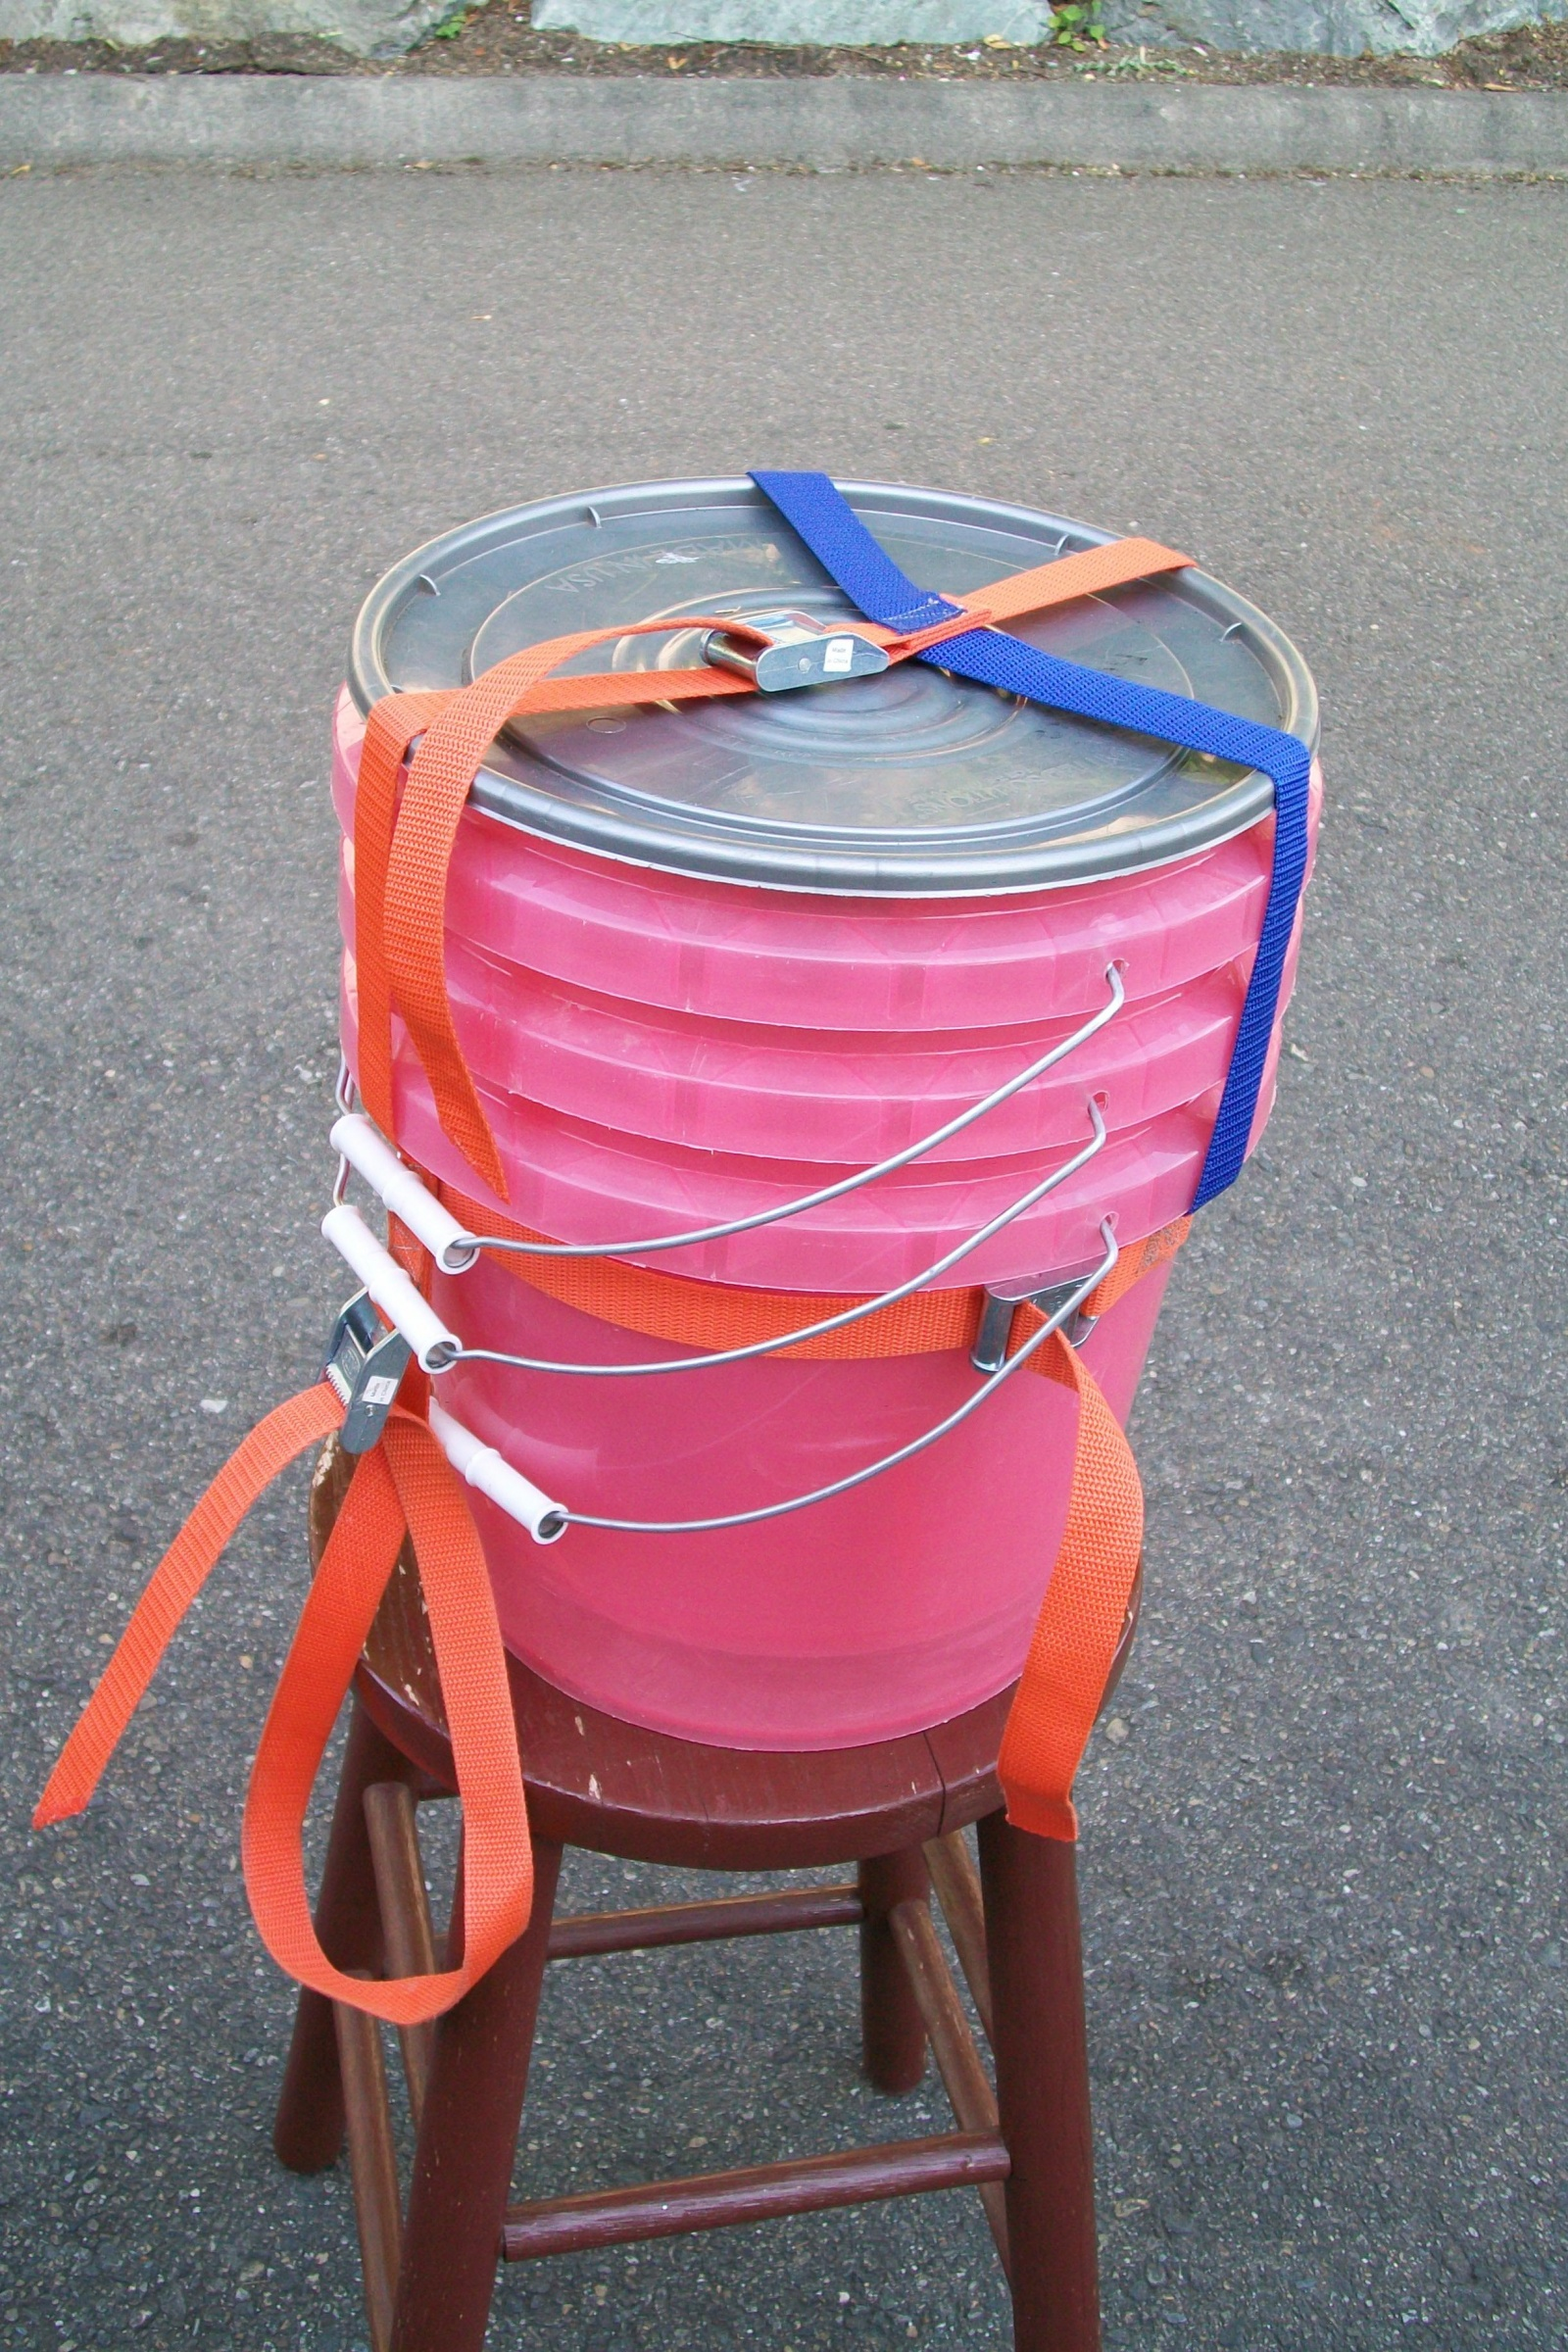 Click image for larger version  Name:Another bucket strap solution.jpg Views:204 Size:1.35 MB ID:6514